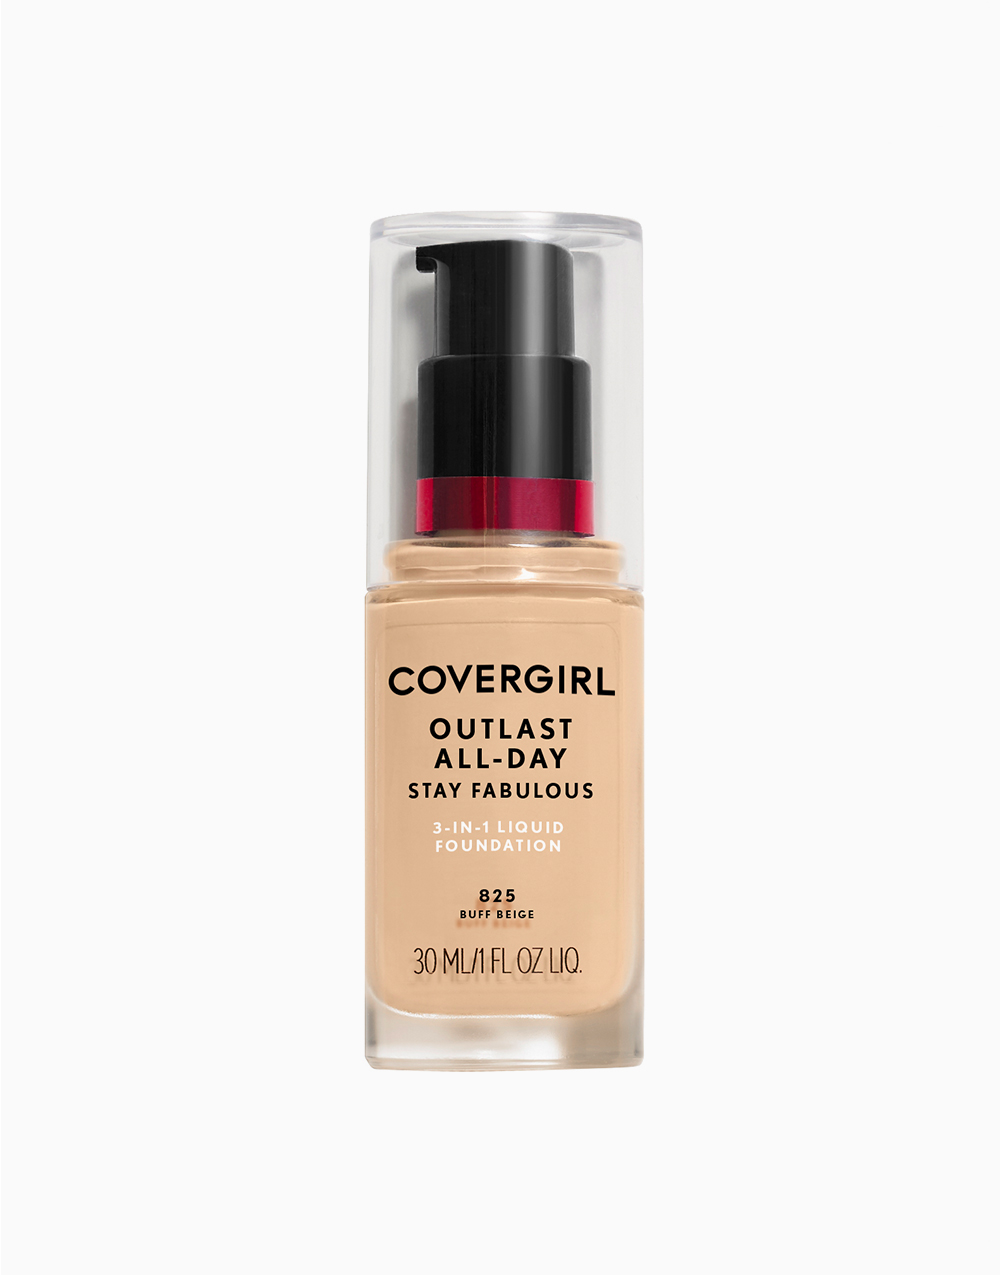 Outlast Stay Fabulous 3-in-1 Foundation by CoverGirl   Buff Beige